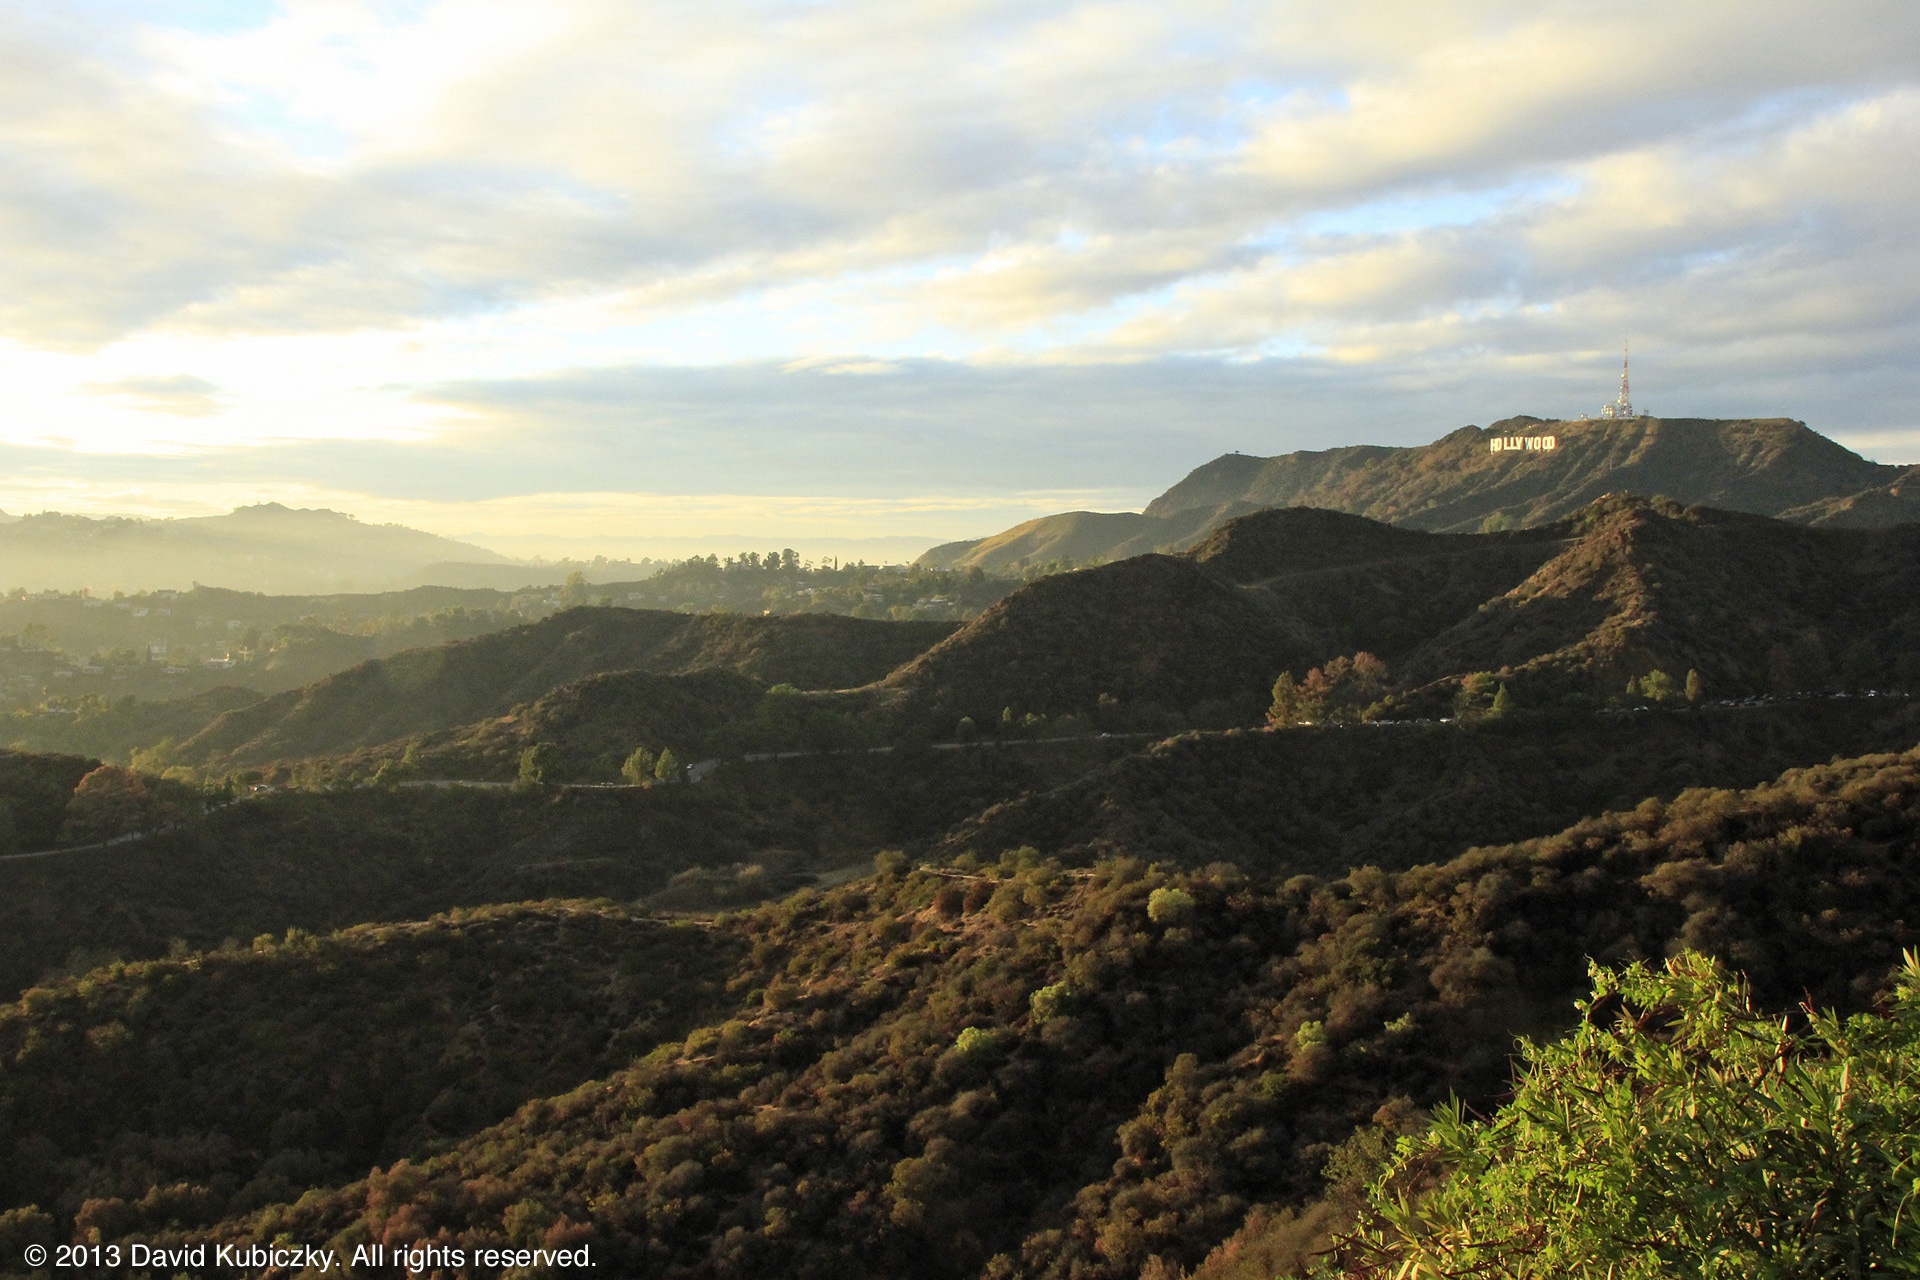 The Hollywood Hills - a promised land to many.